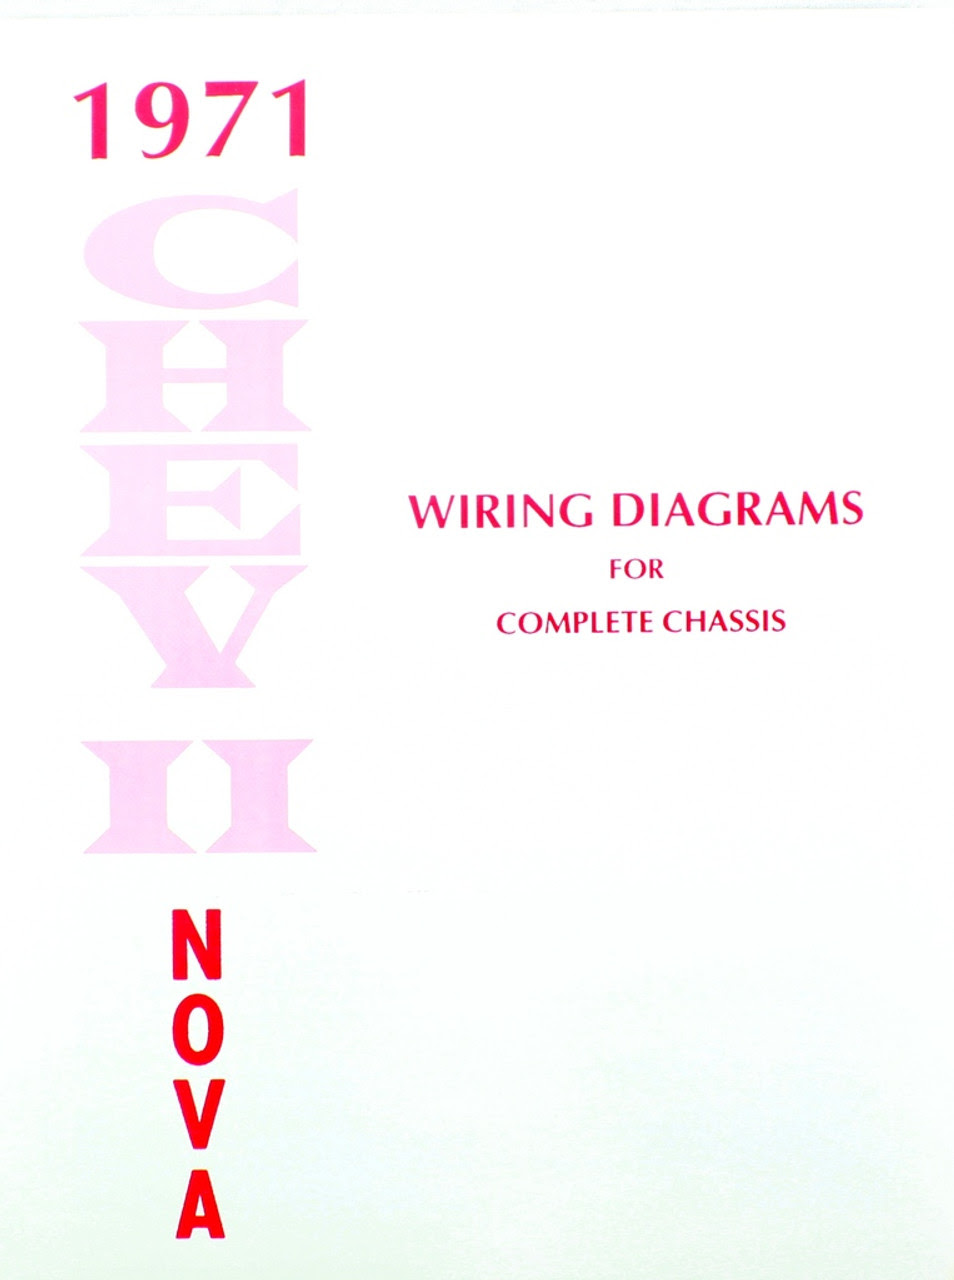 Diagram In Pictures Database 1993 Chevy 5 7 Wiring Diagram Just Download Or Read Wiring Diagram Nicolas Sparks Wiring Onyxum Com